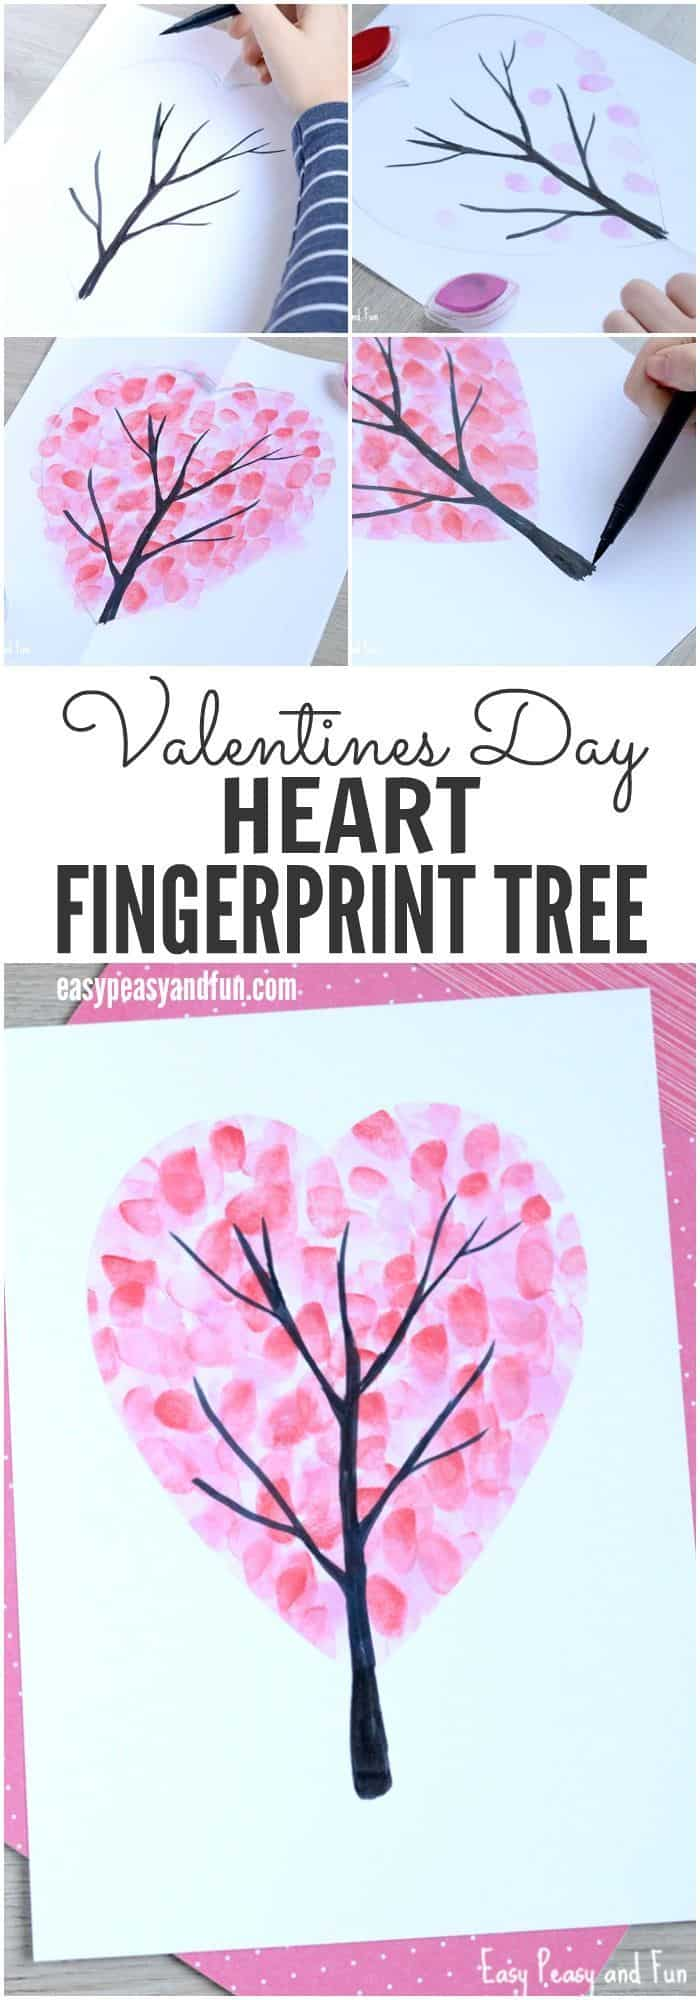 Heart shaped fingerprint tree